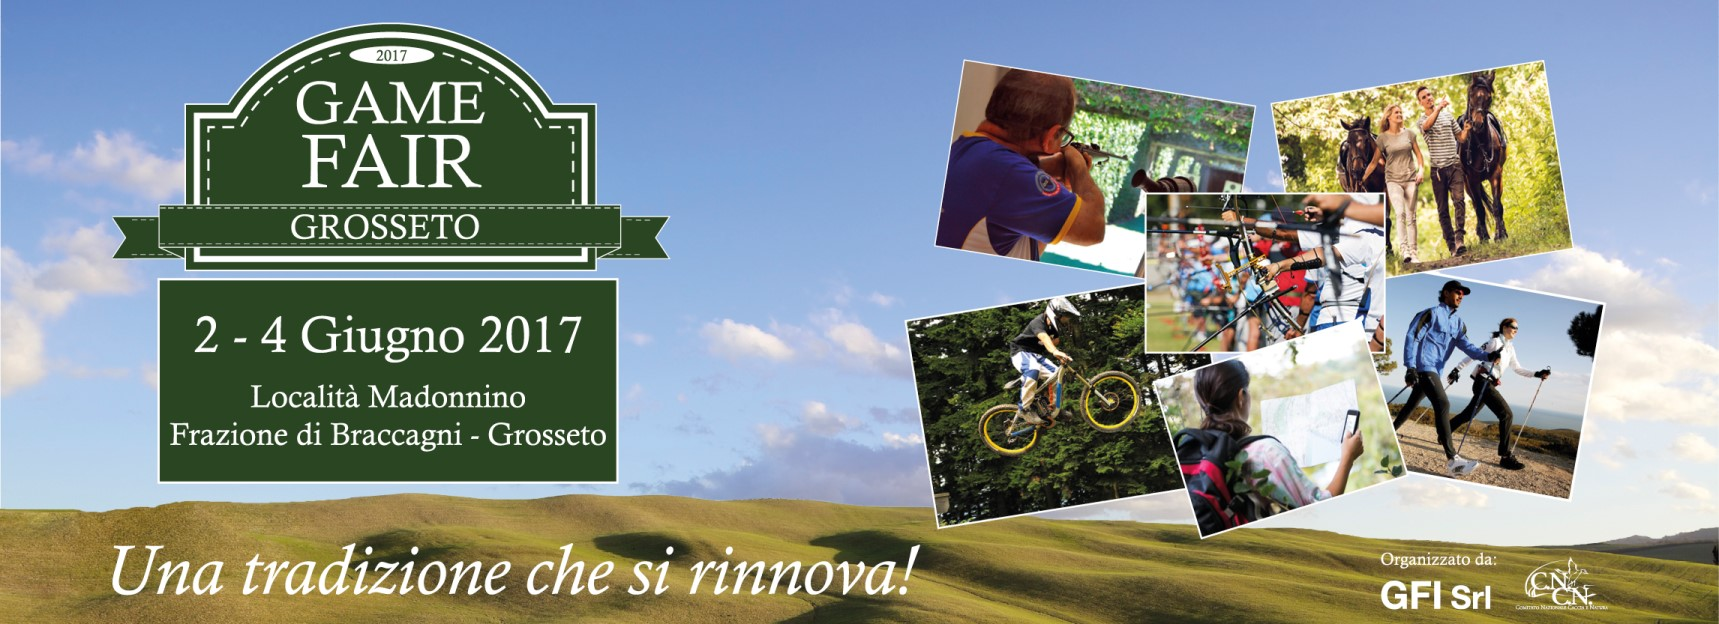 Game Fair Grosseto 2017